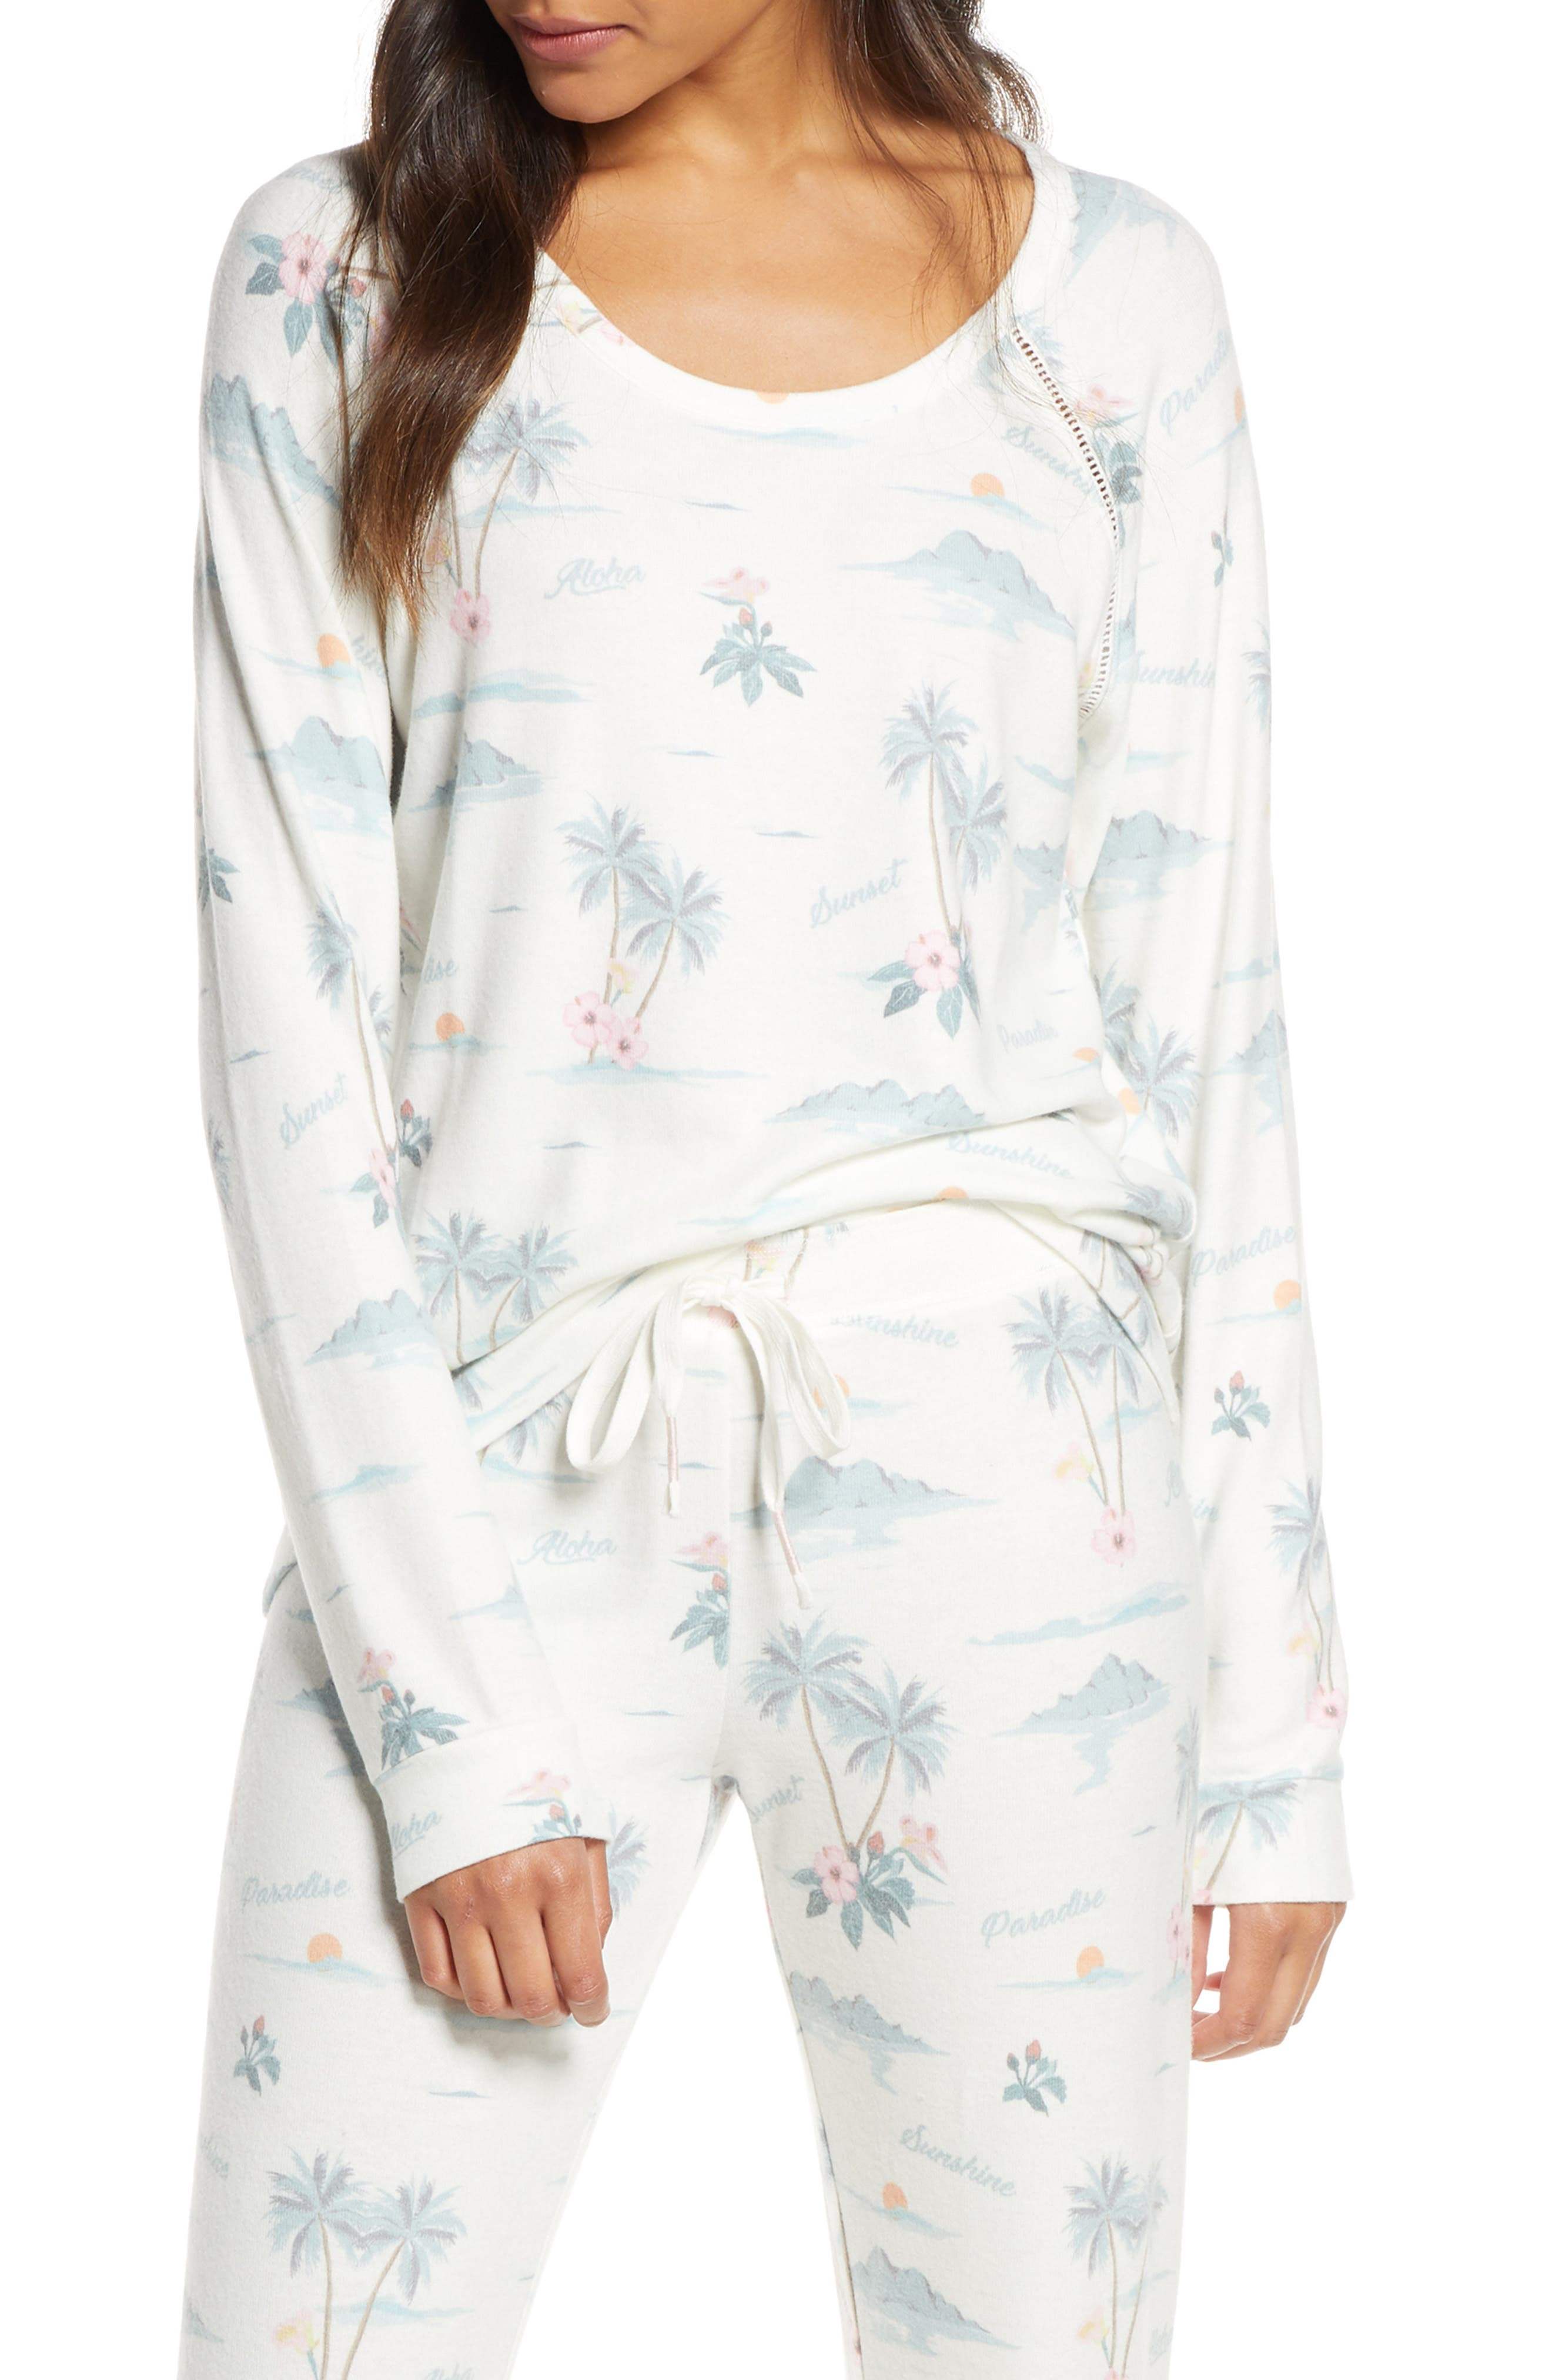 Pj Salvage Paradise Dream Pajama Top, Ivory